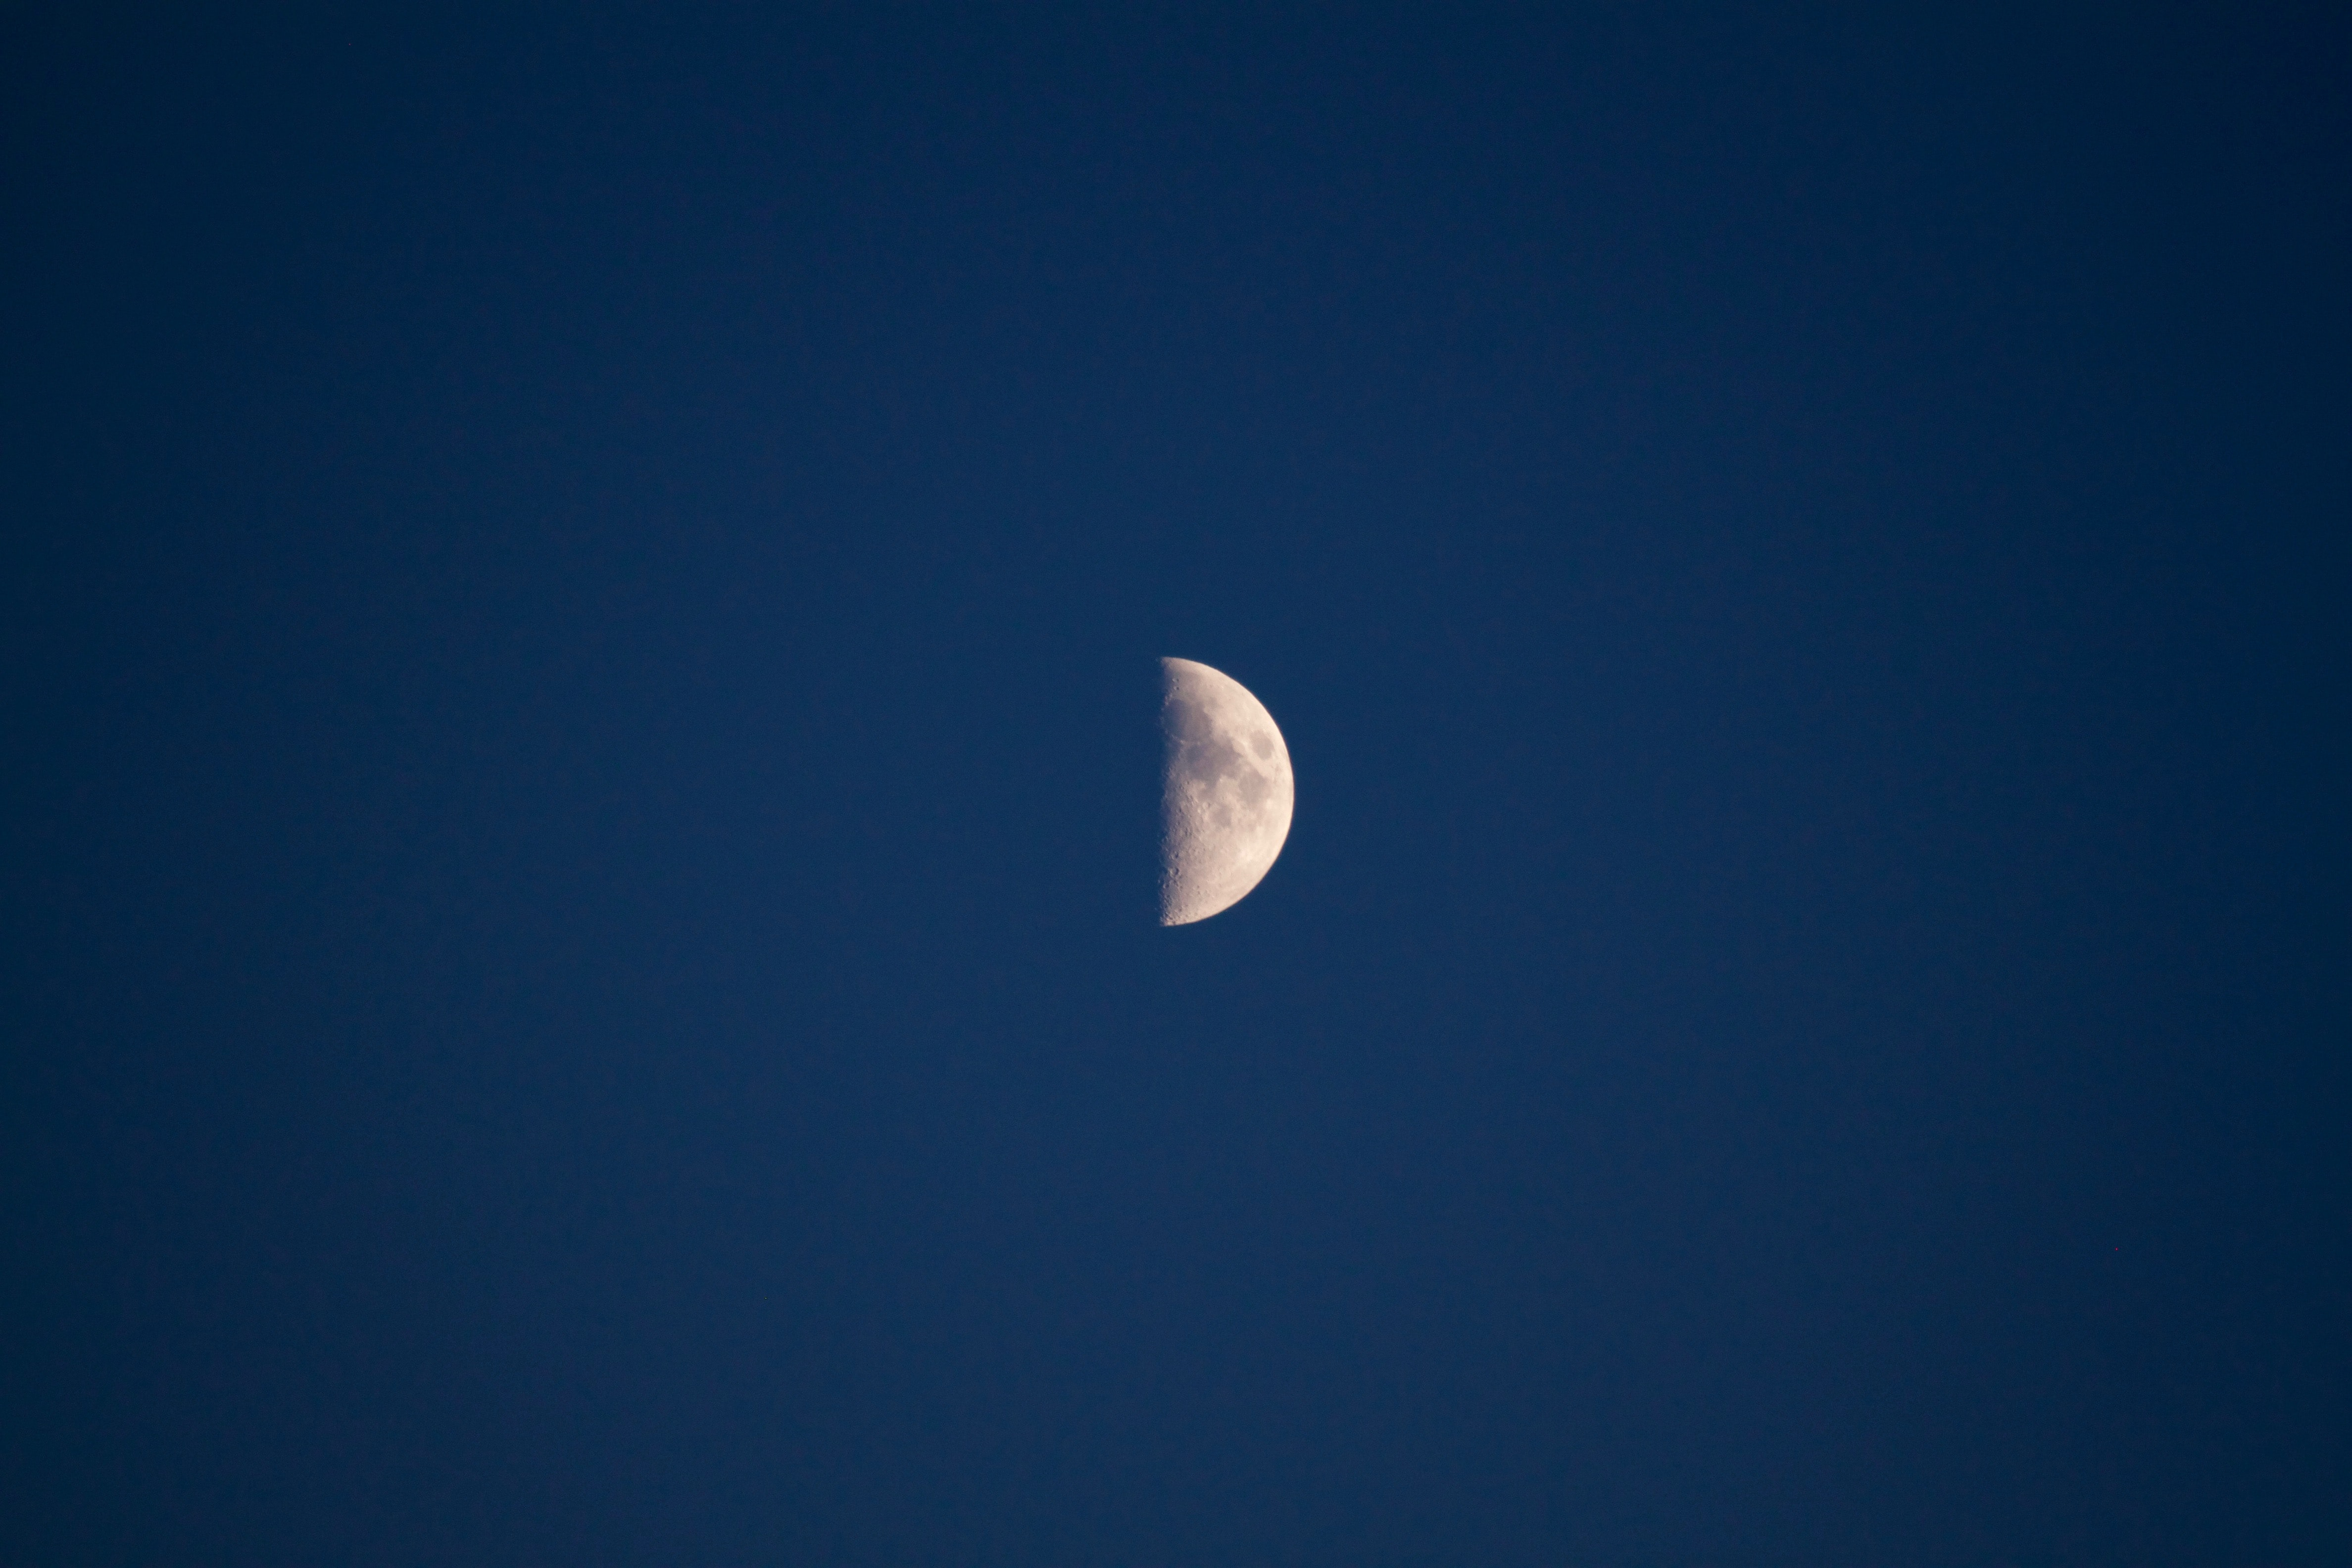 Half moon with visible dark spots in the inky blue sky